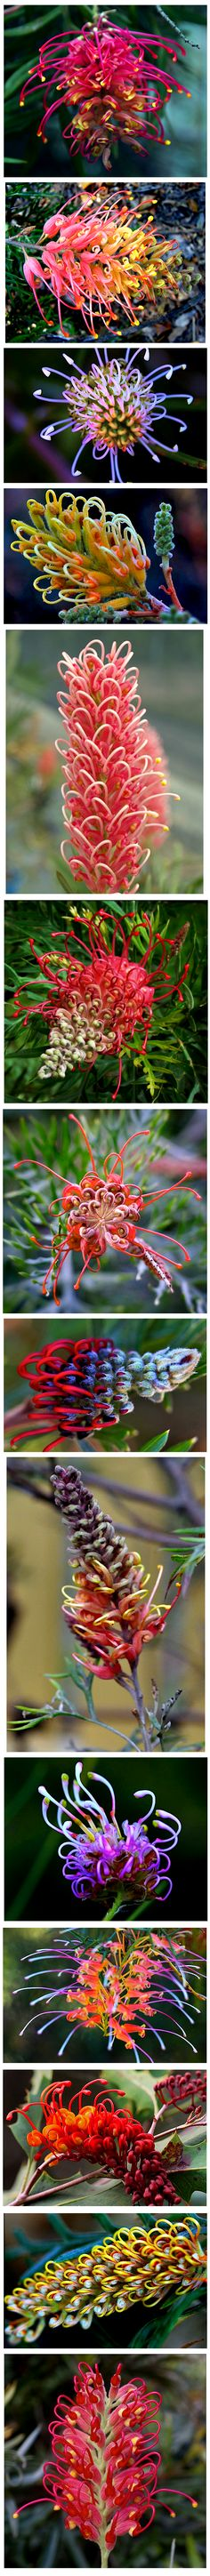 Grevillea sp. My favourite Australian flowering shrub.